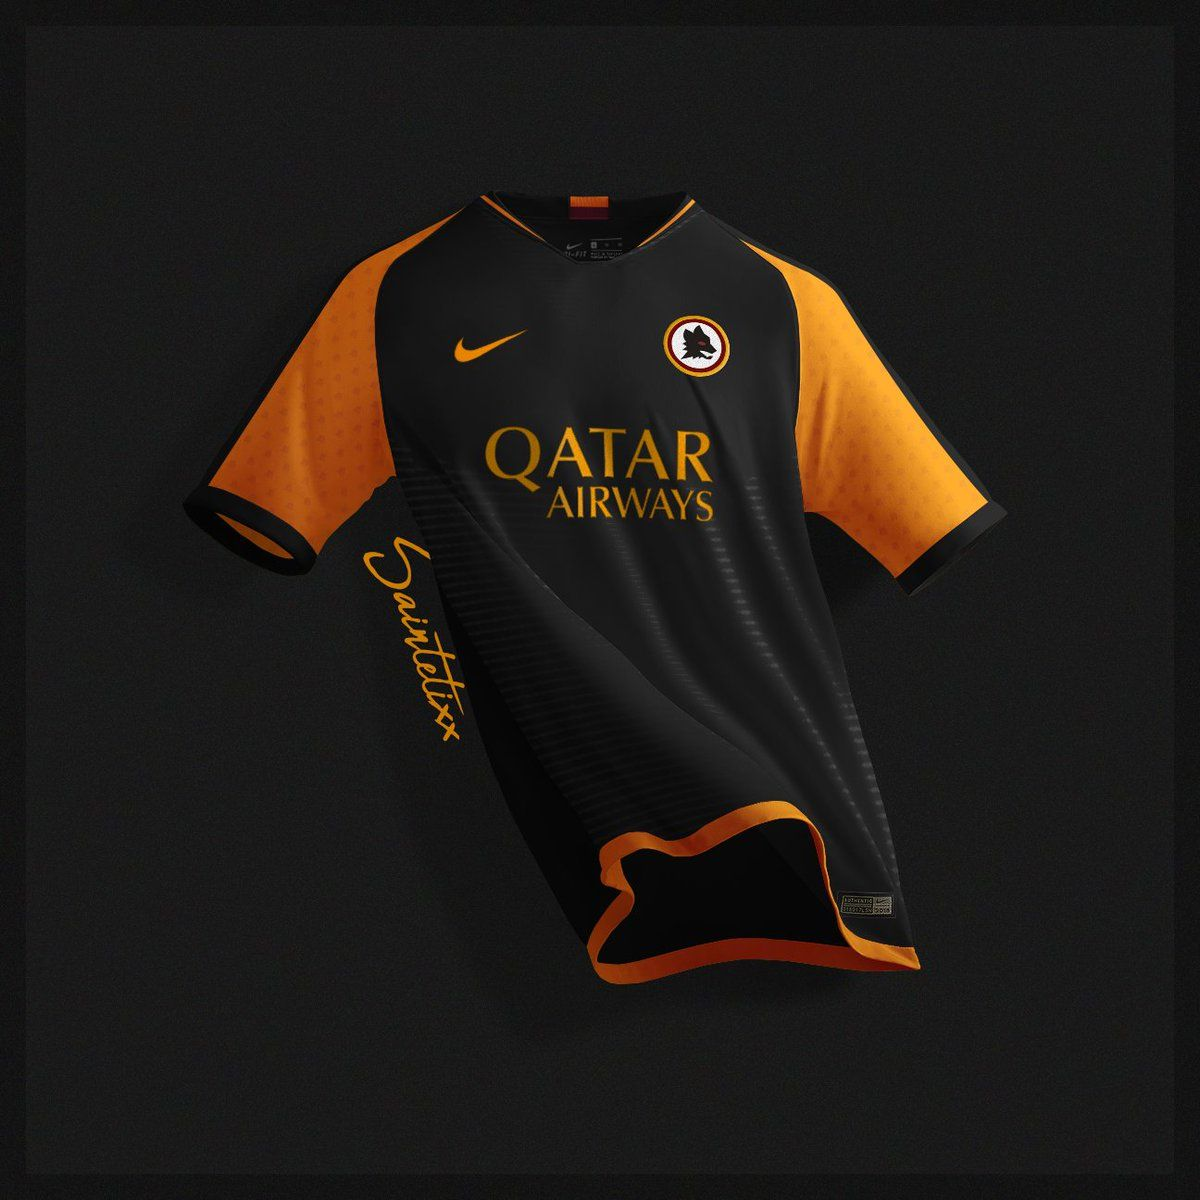 Download Saintetixx Saintetixx Twitter Jersey Design Soccer Kits Work Uniforms